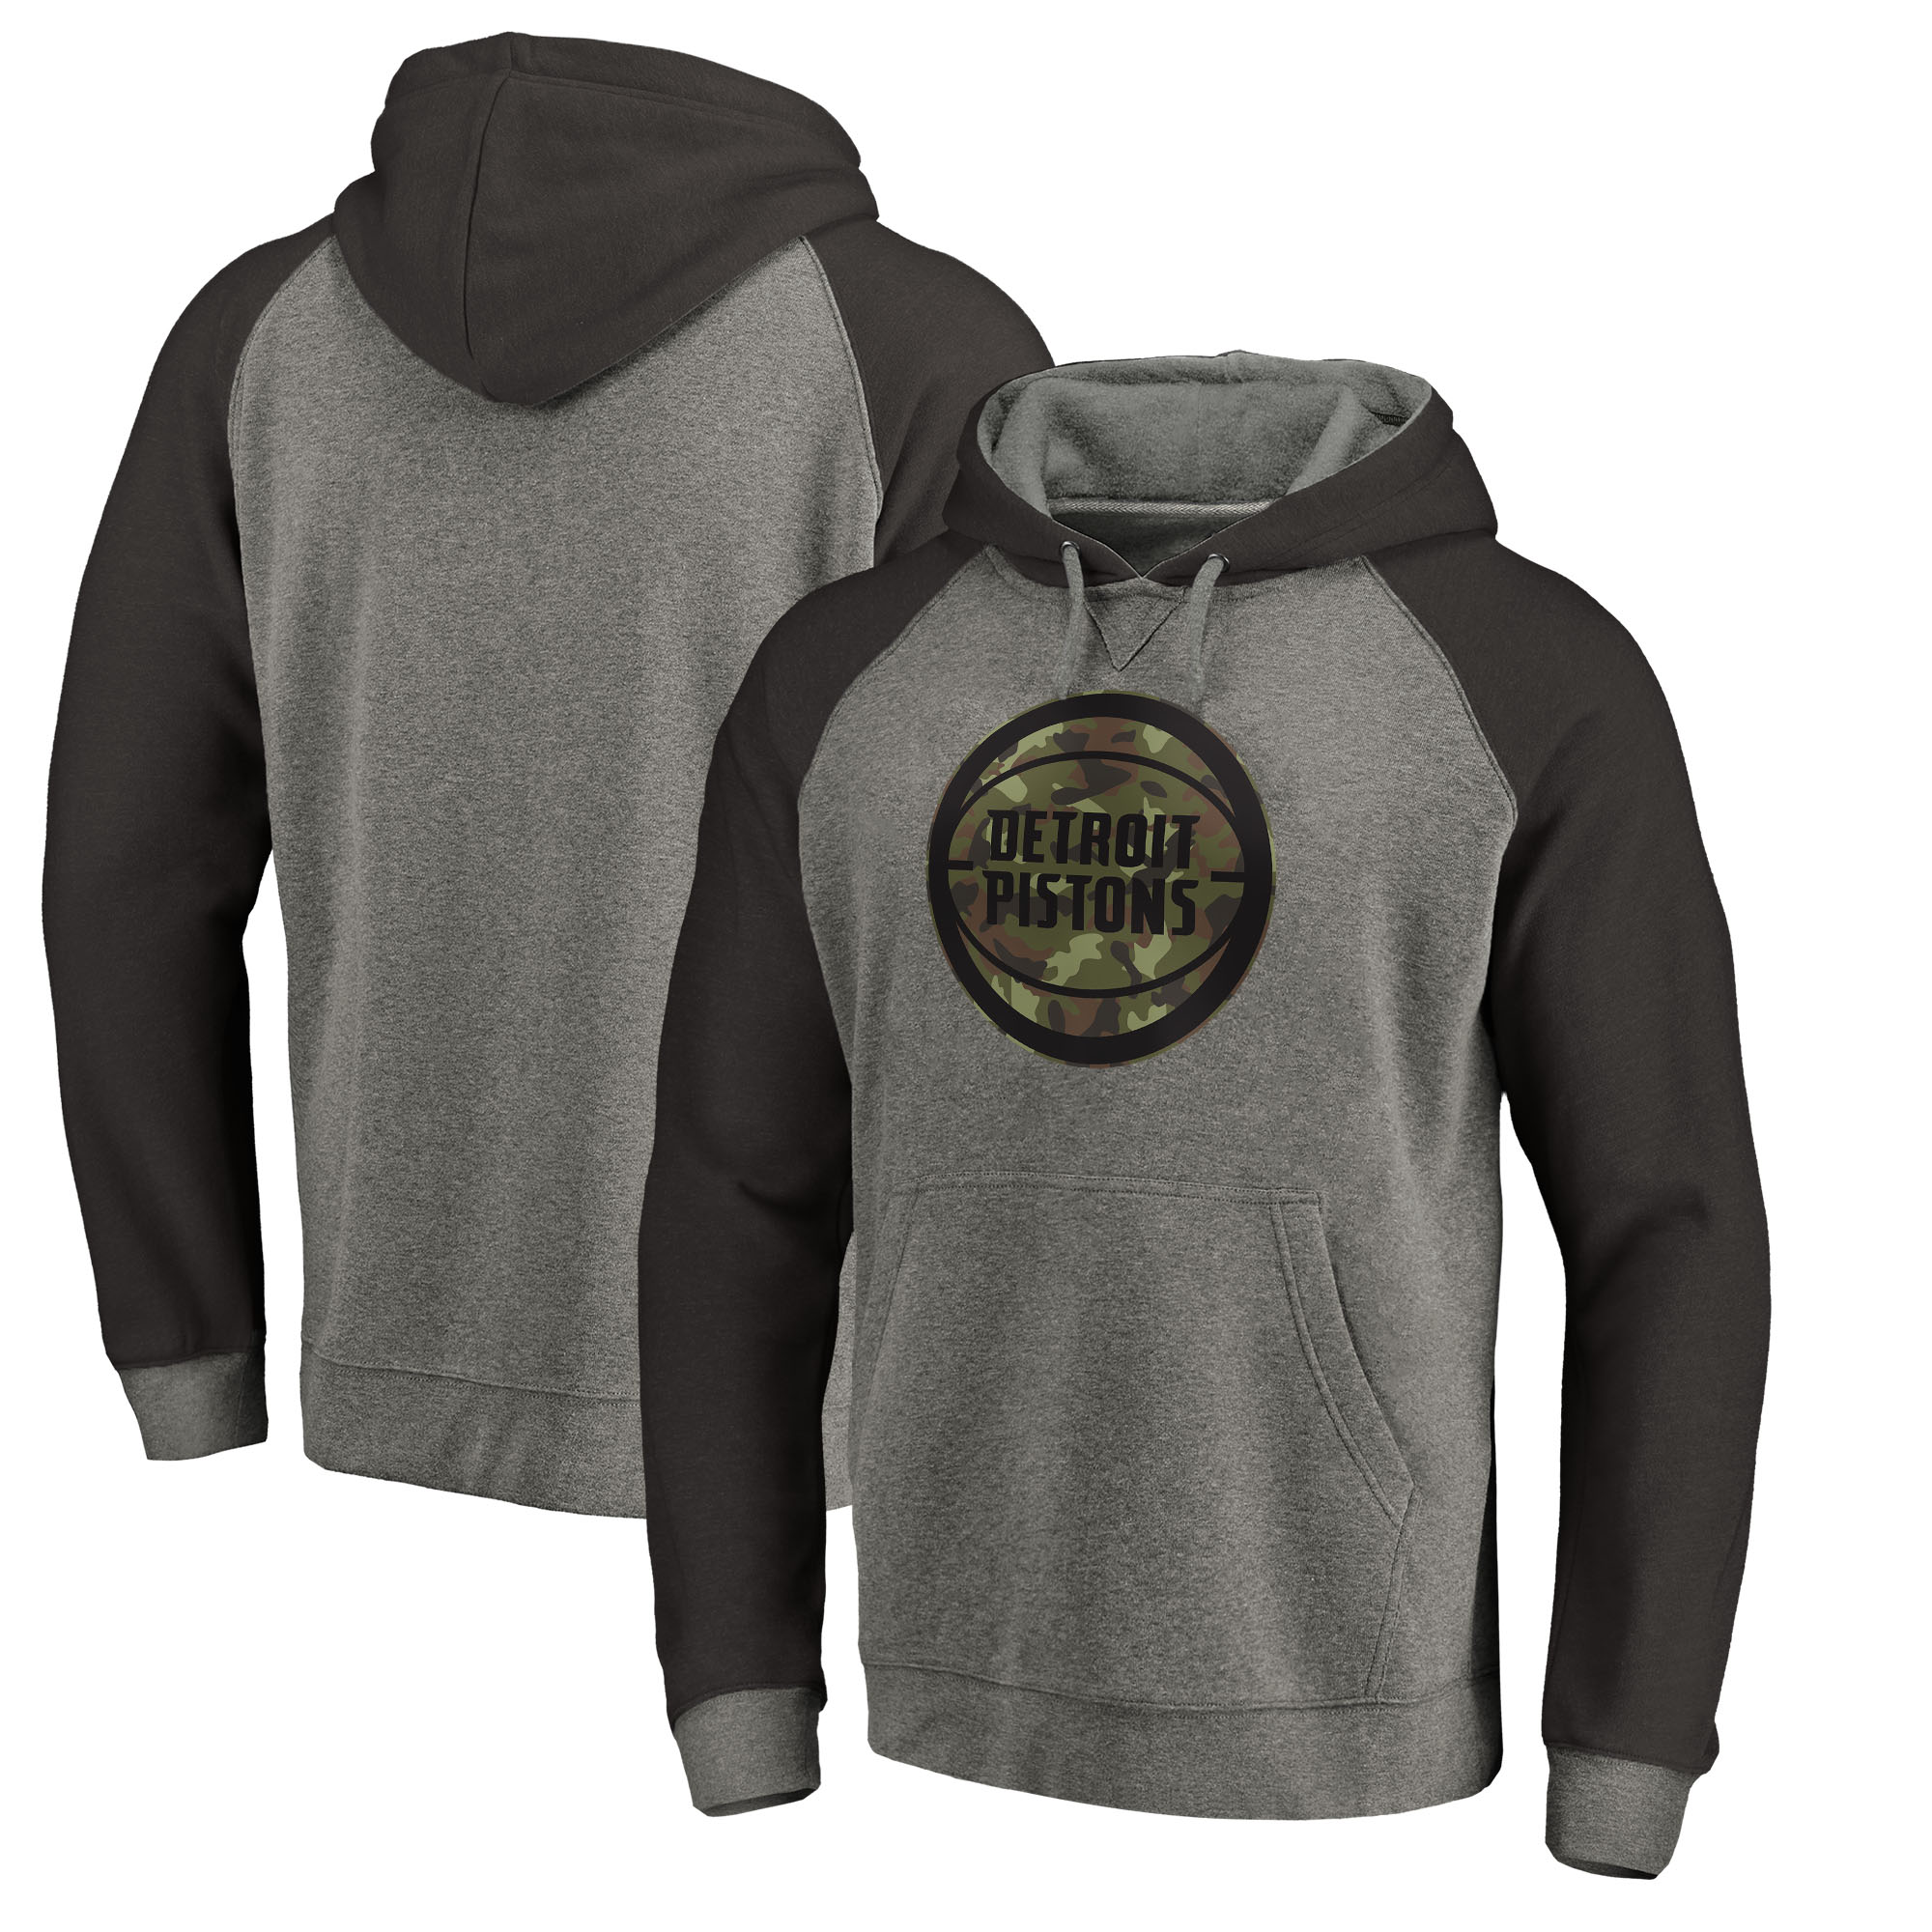 Detroit Pistons Fanatics Branded Prestige Camo Tri-Blend Pullover Hoodie - Heathered Gray